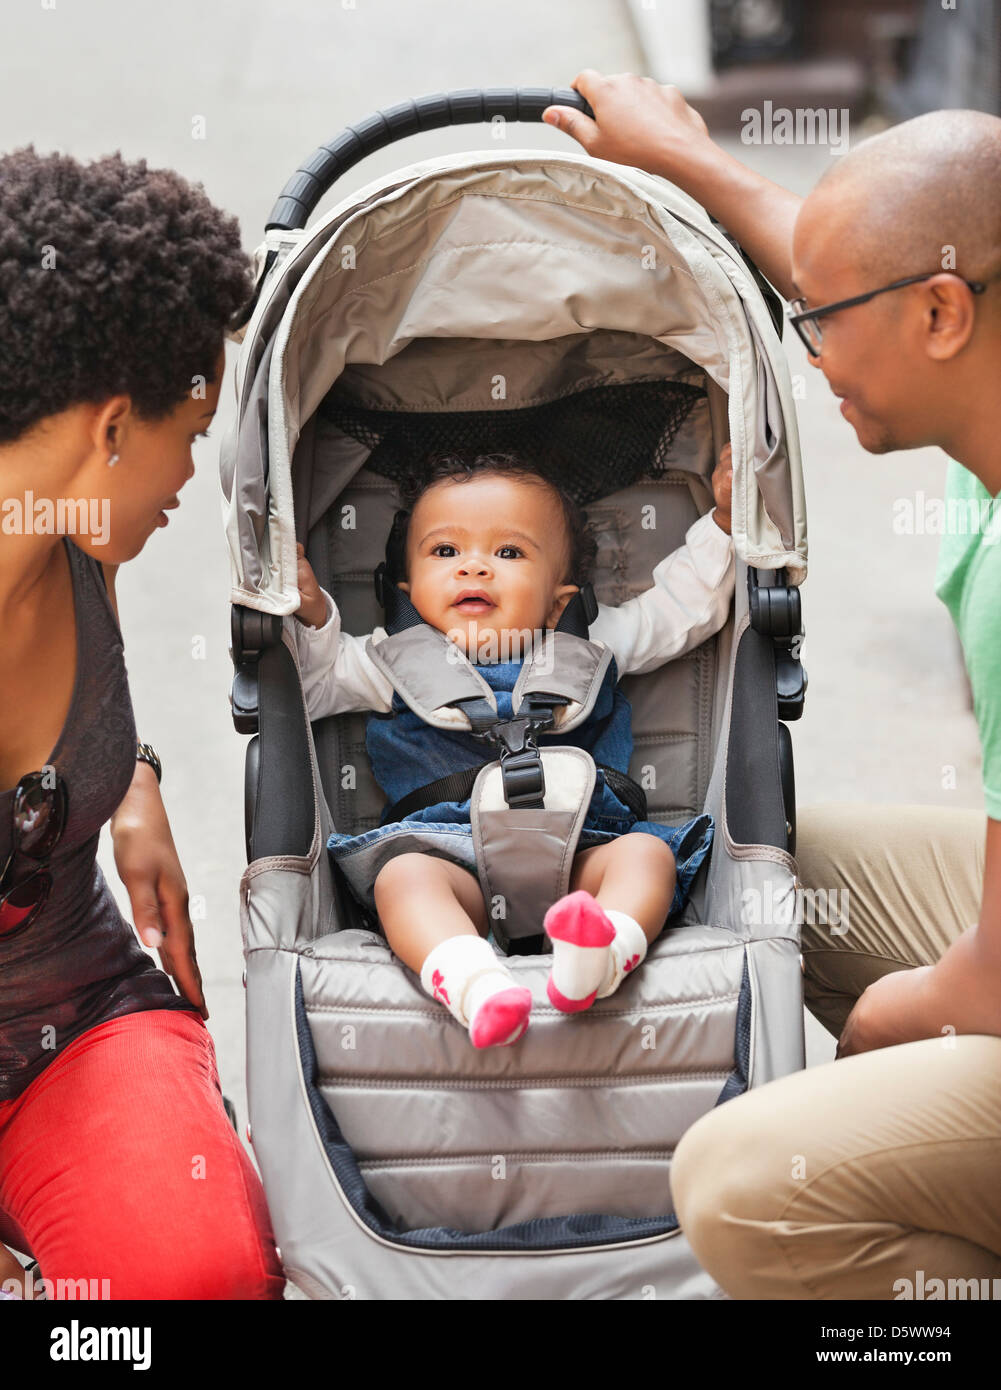 Parents with baby in stroller on city street - Stock Image